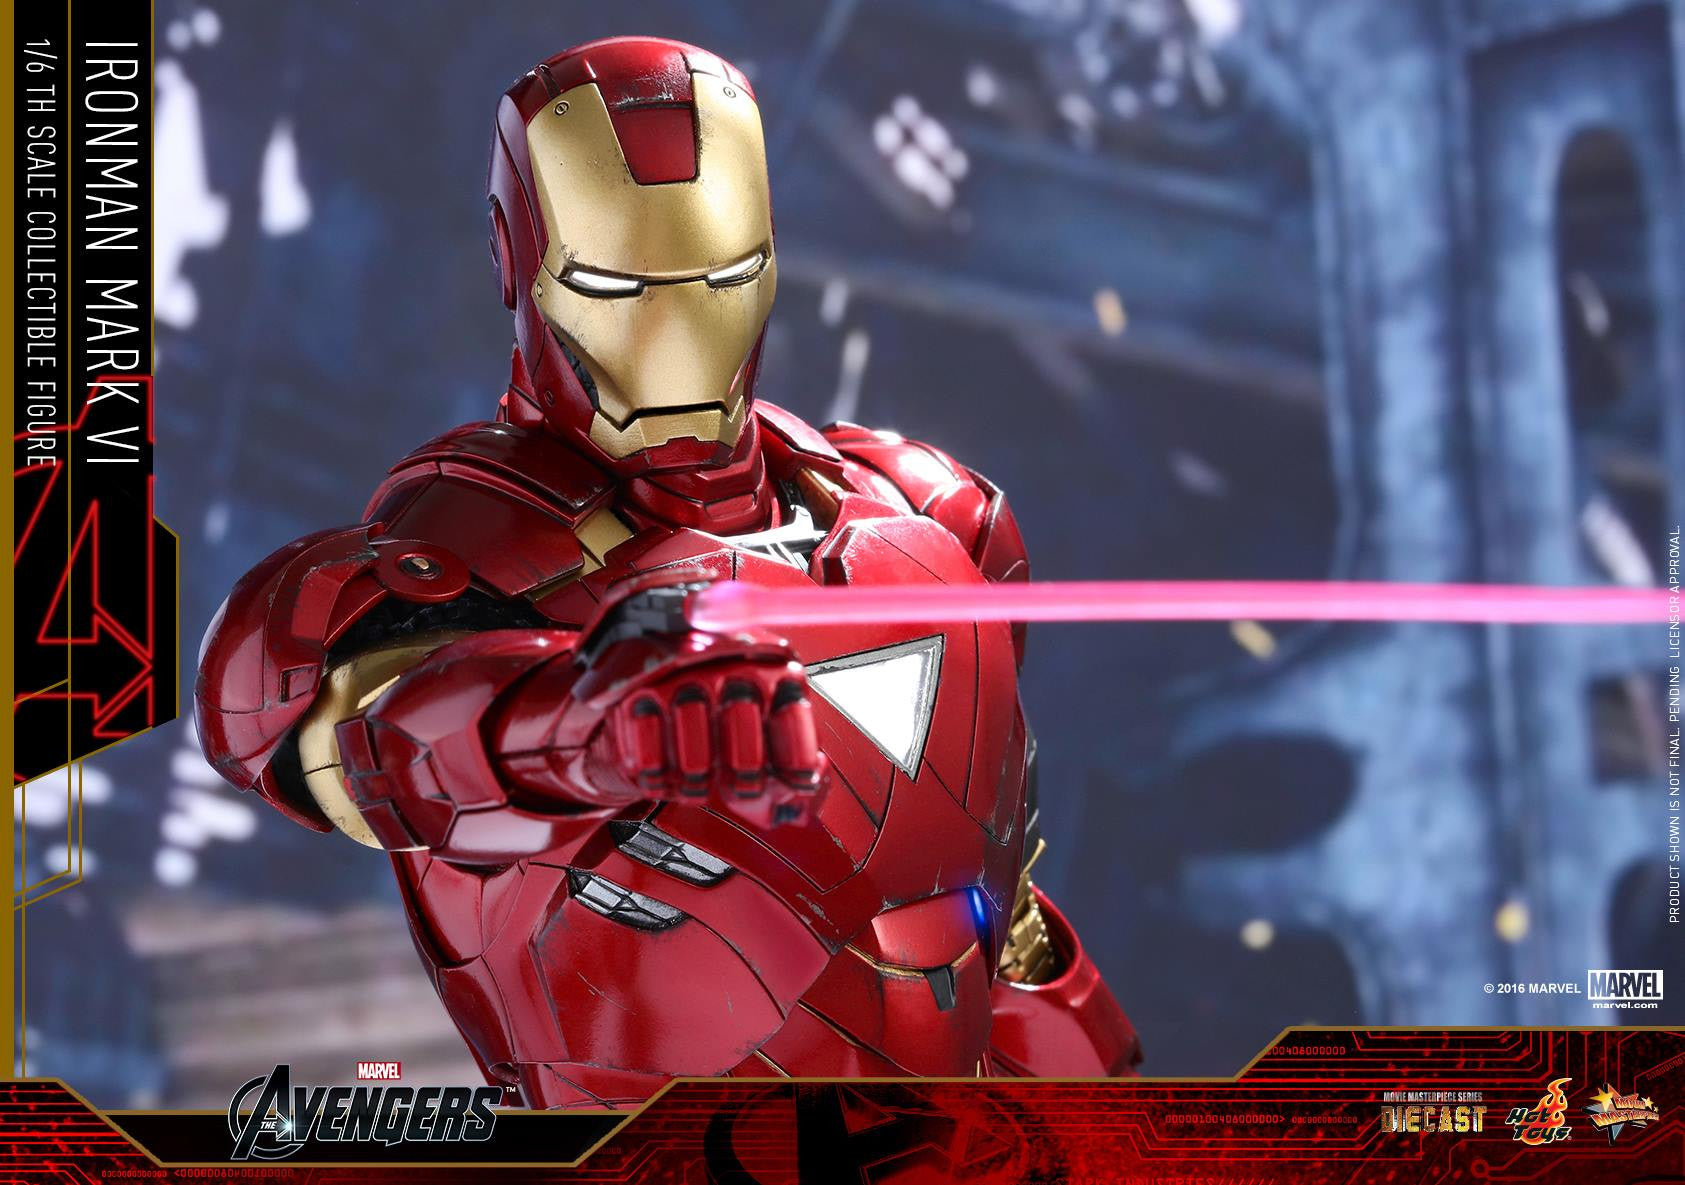 Hot Toys - MMS378D17 - The Avengers - Iron Man Mark VI (DIECAST) (Normal Edition) - Marvelous Toys - 20